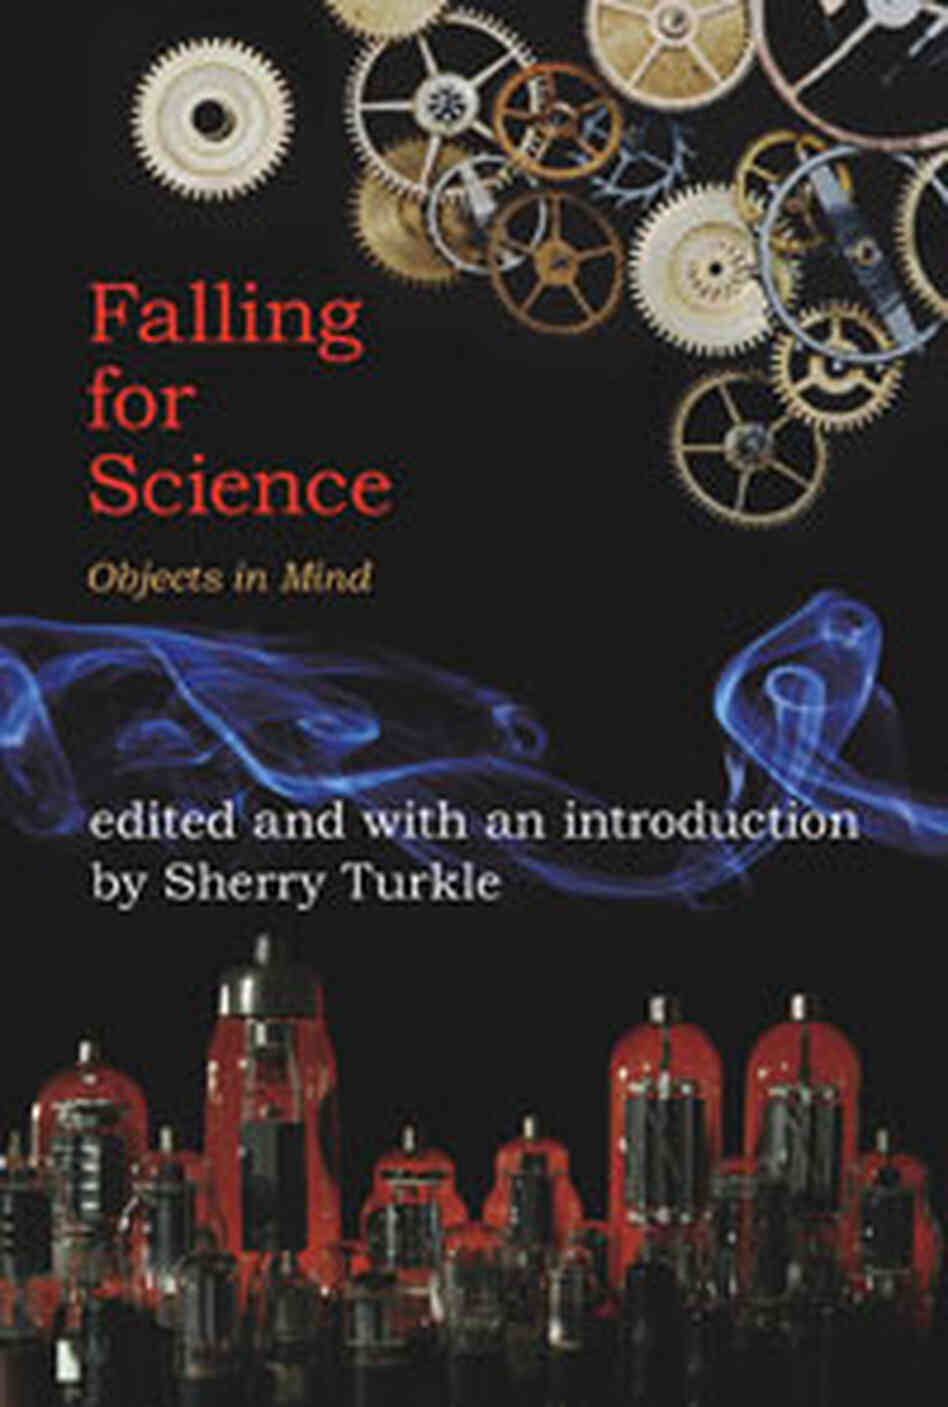 """Falling For Science"" by Sherry Turkle."